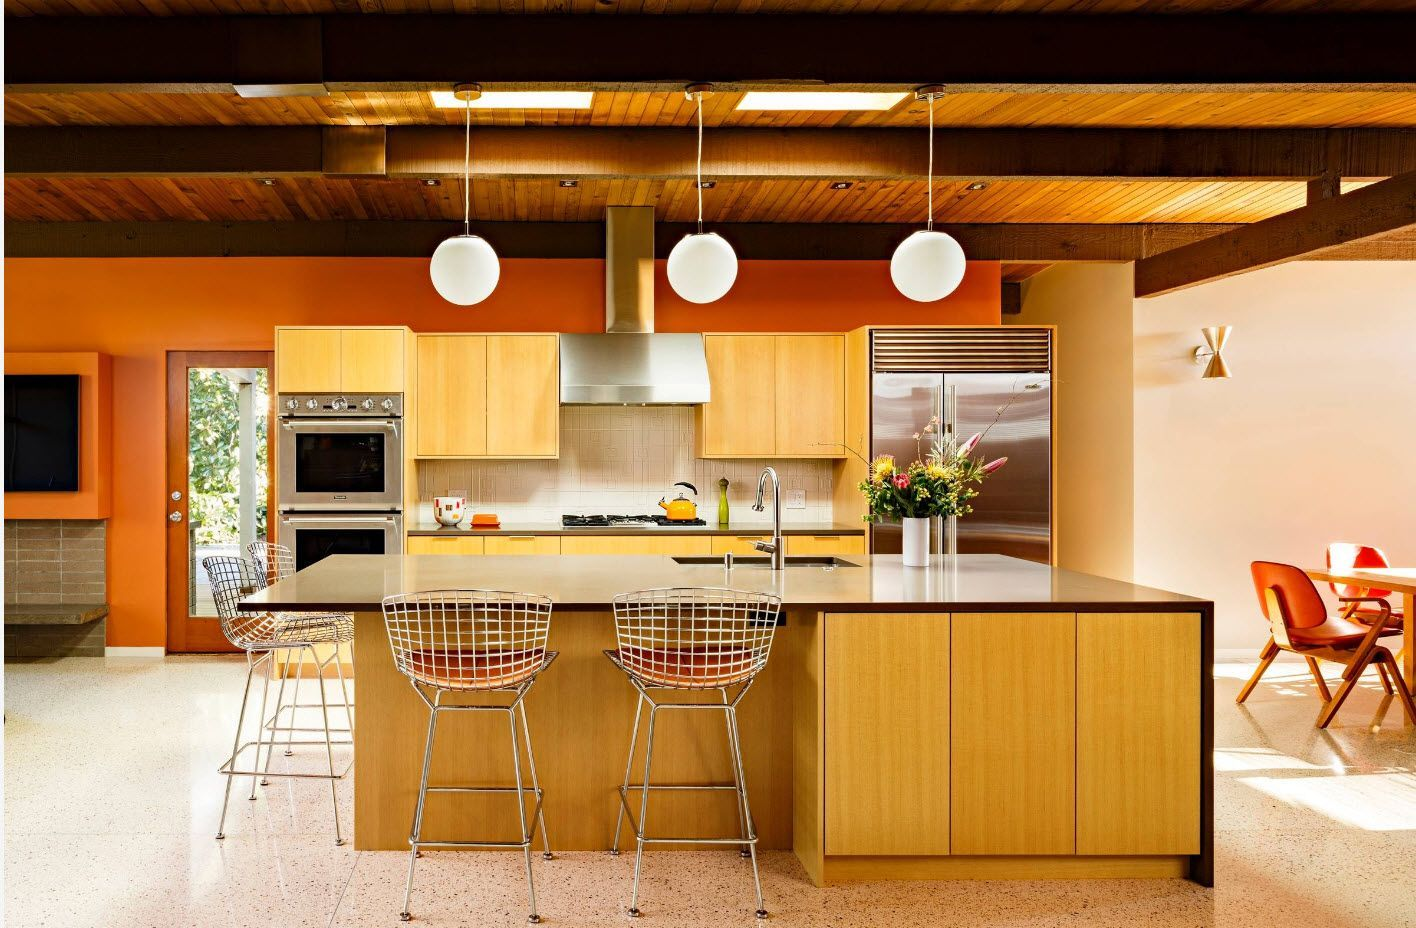 Bright vivid kitchen design 2017 with yellow and dark color palette